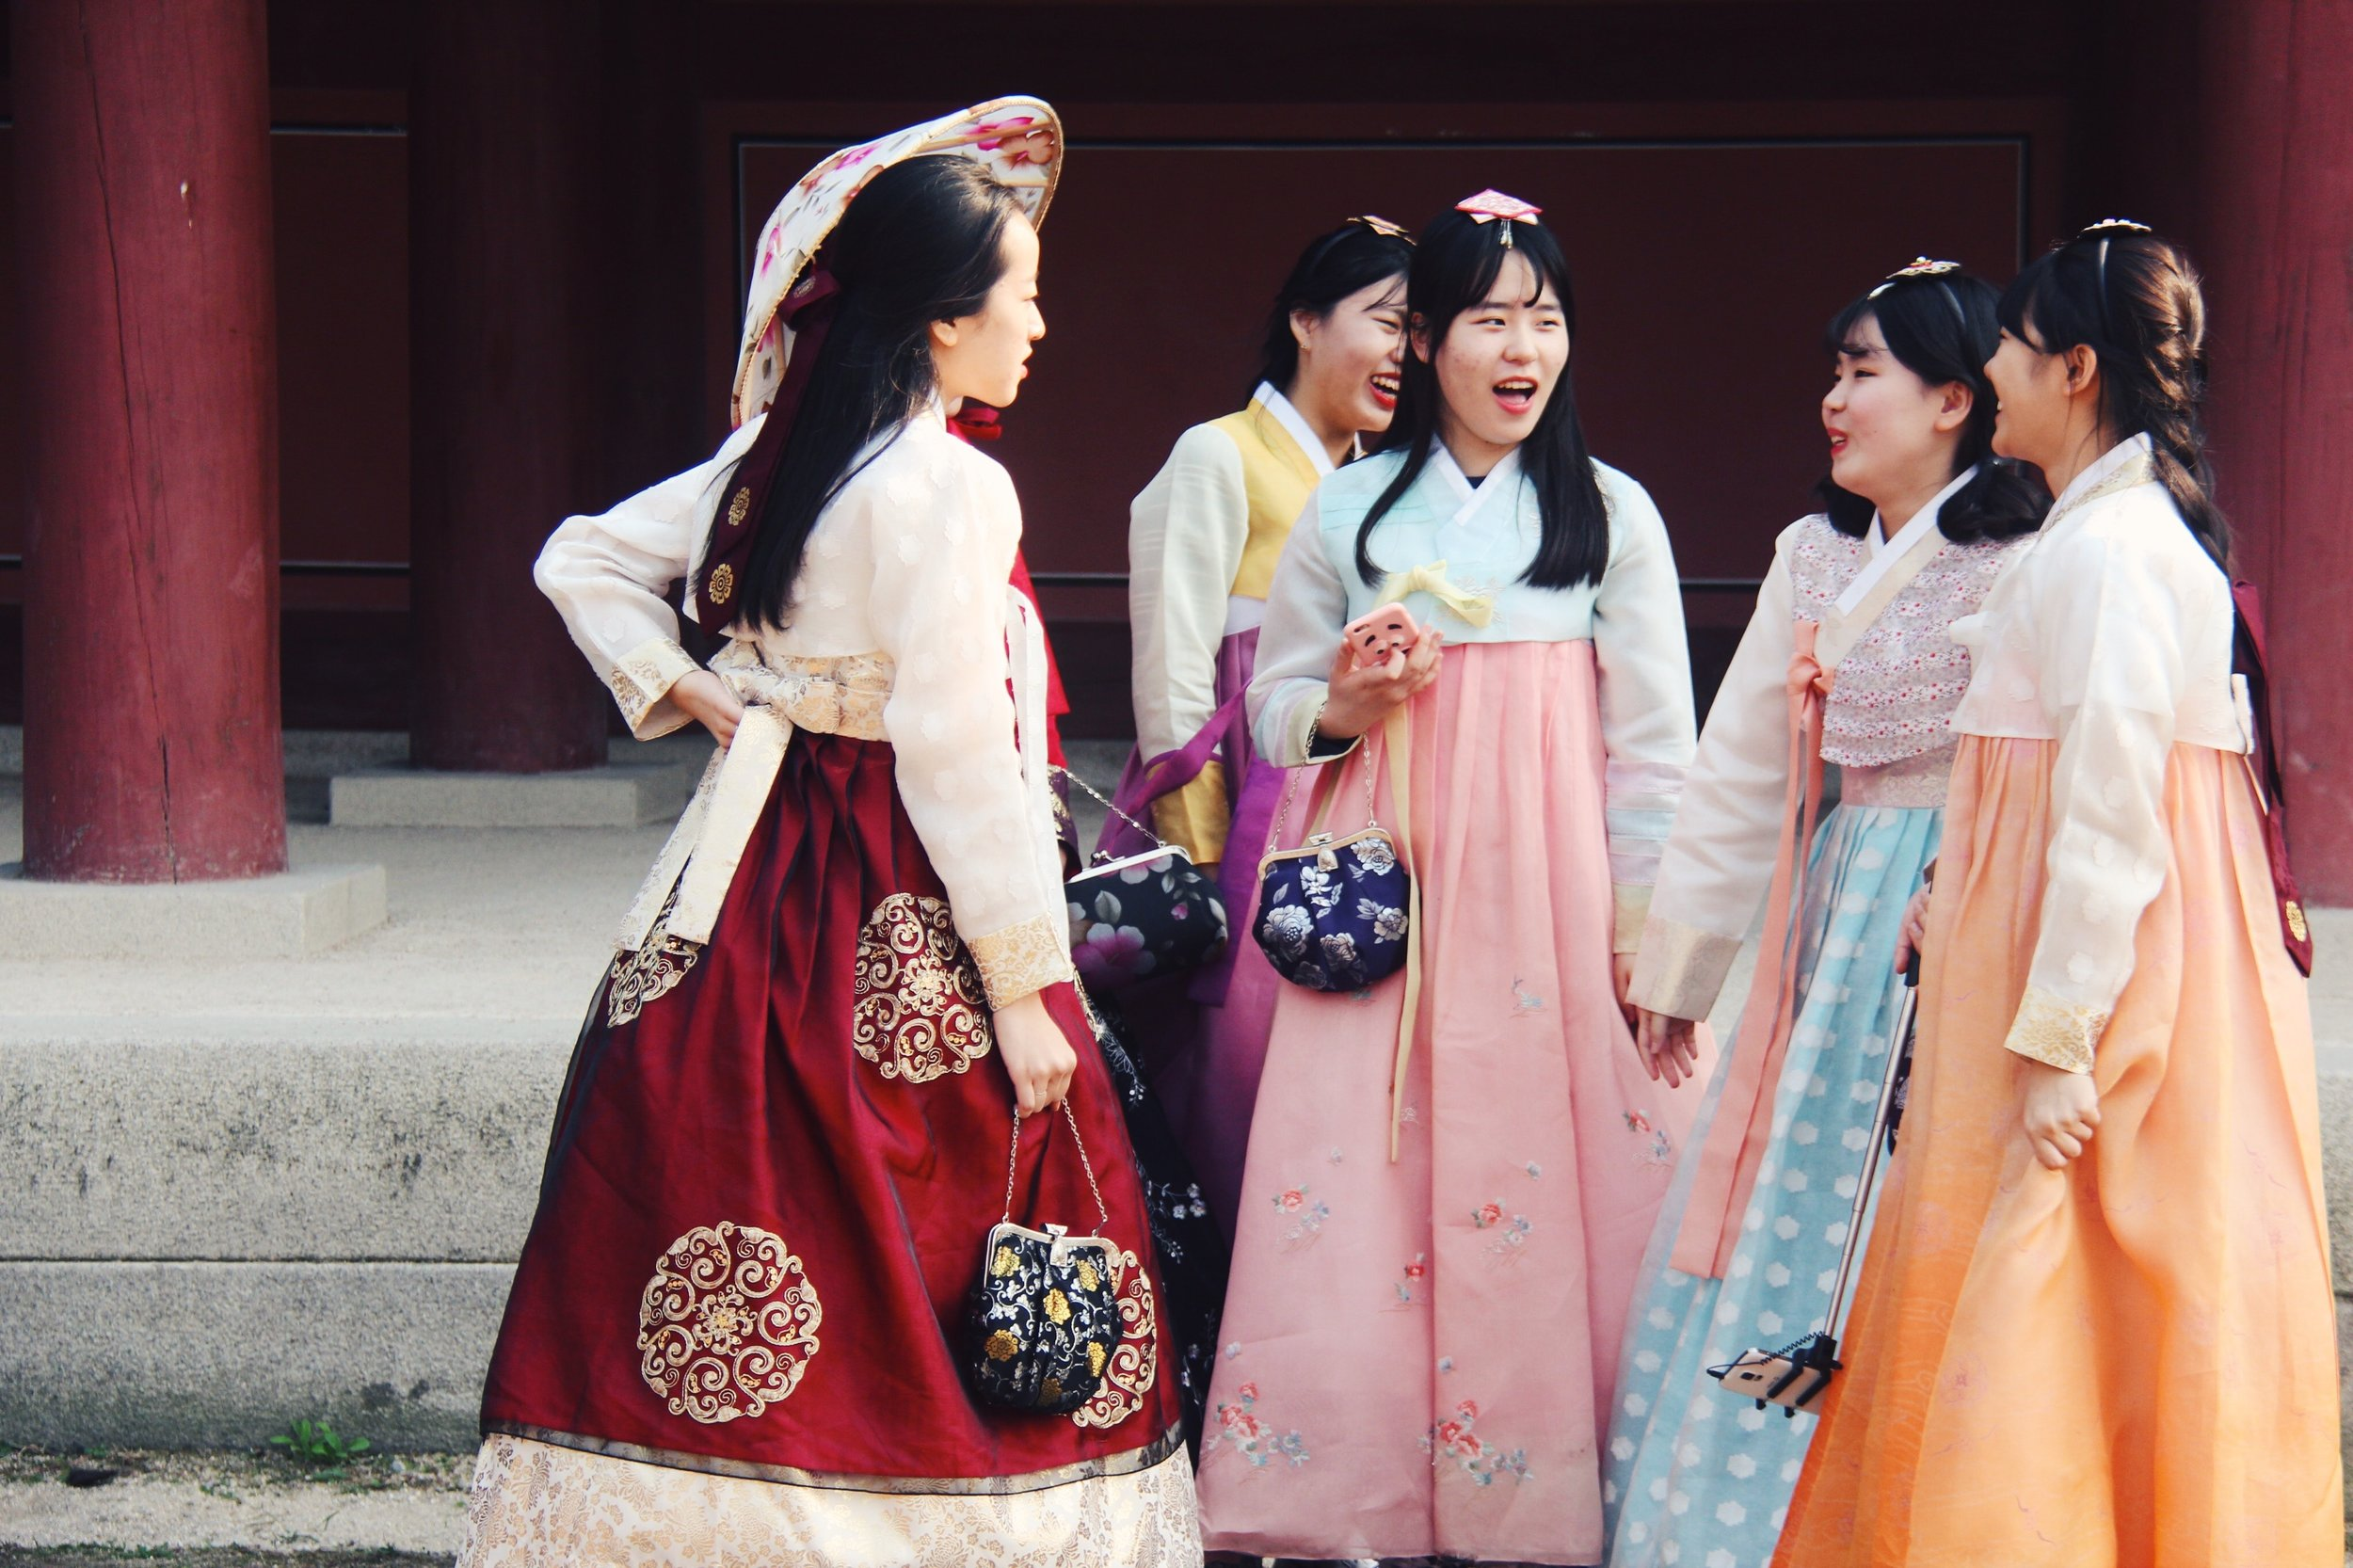 Young girls in rented hanbok enjoy their time at Gyeongbokgung.